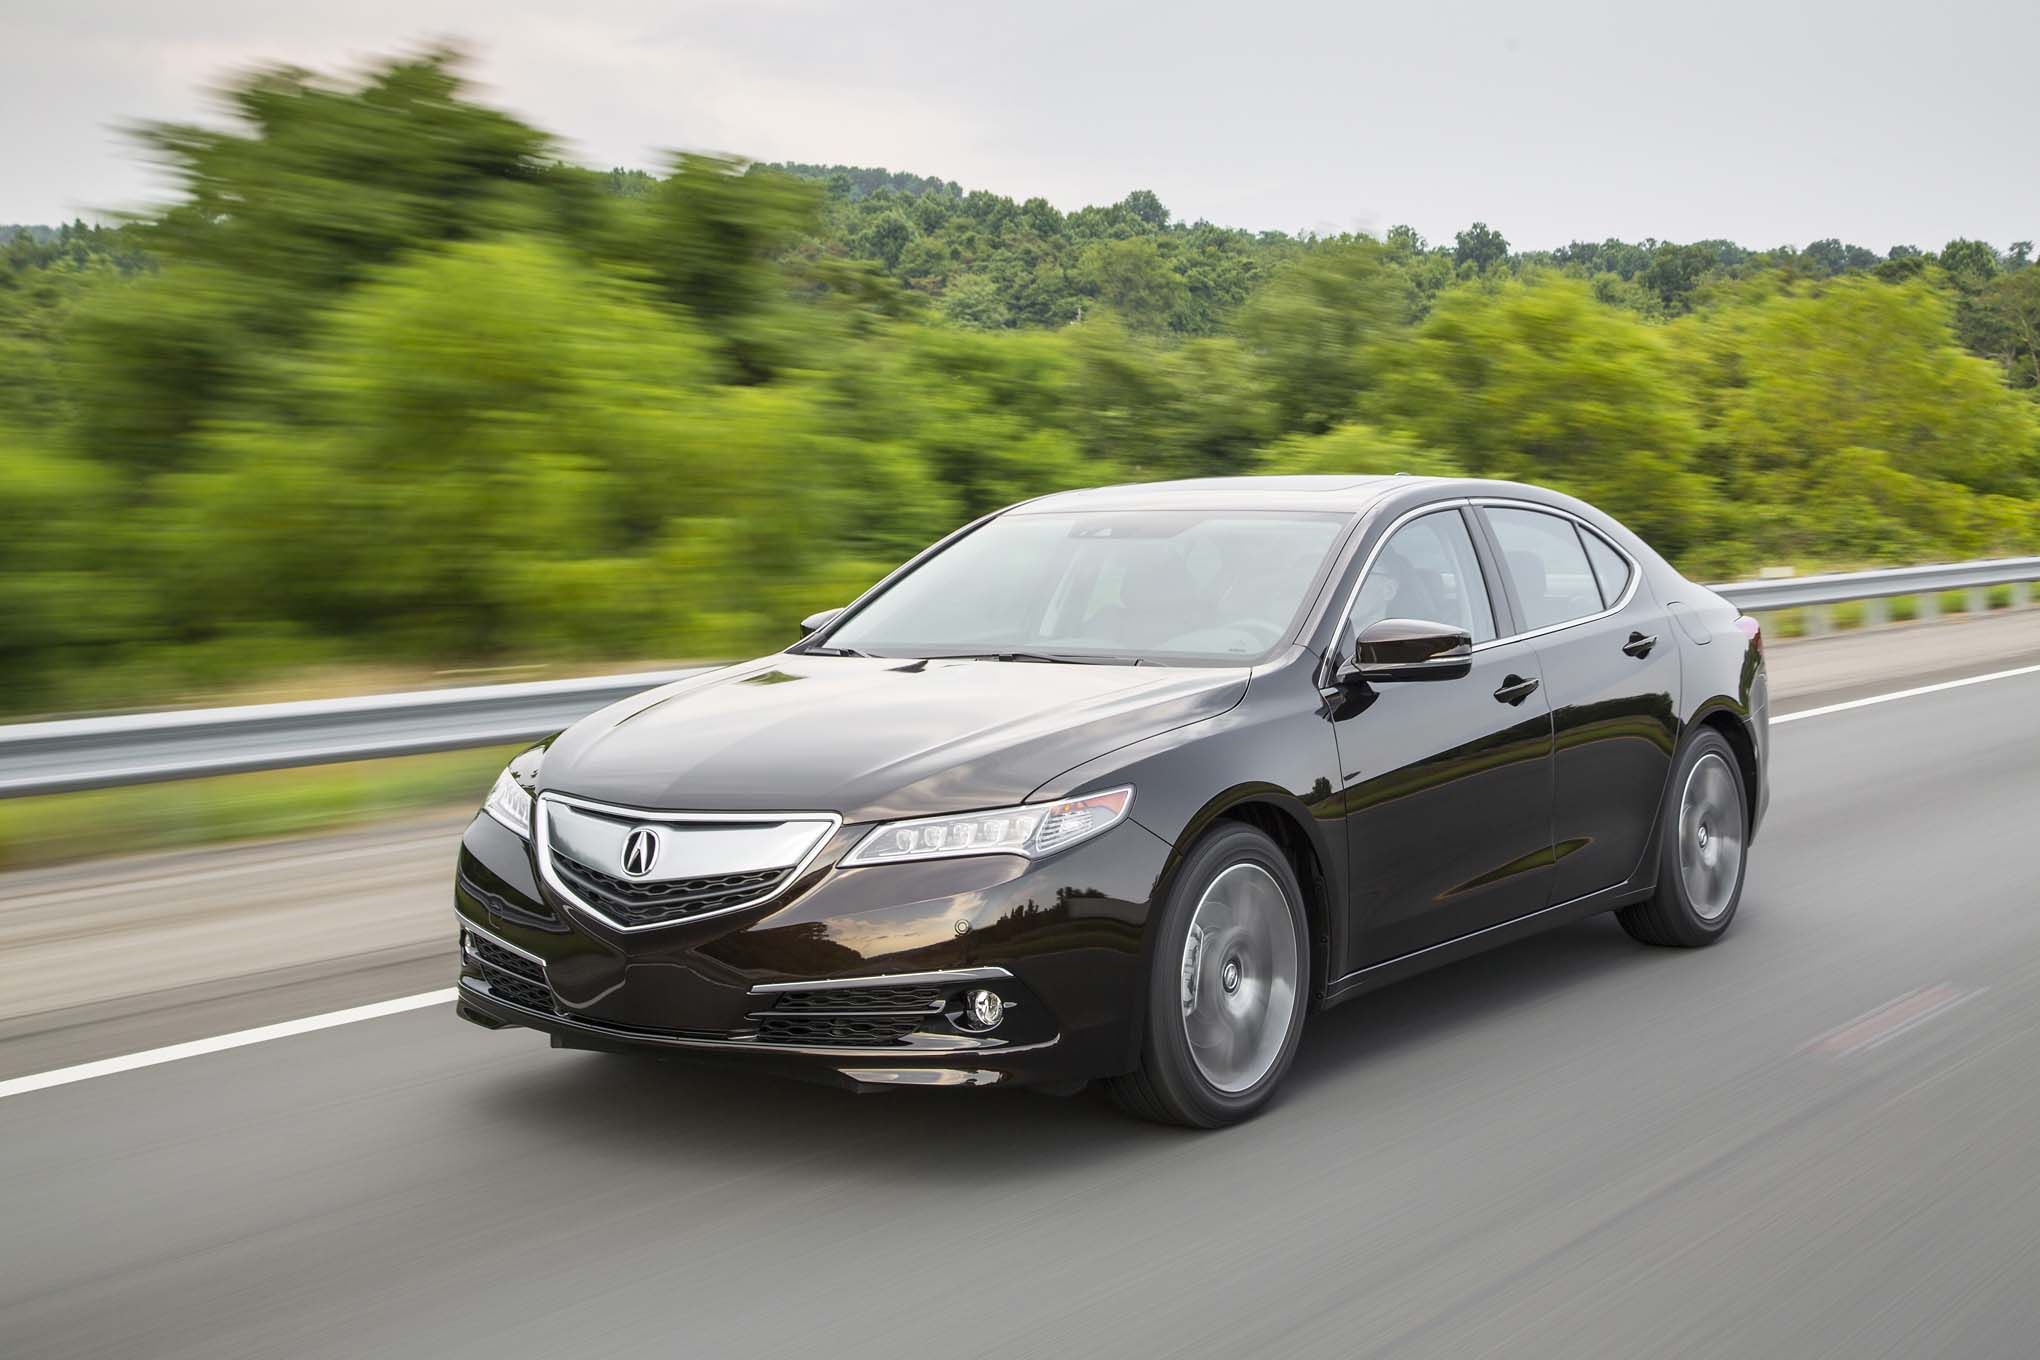 acura tlx 2016 price. 240 acura tlx 2016 price y